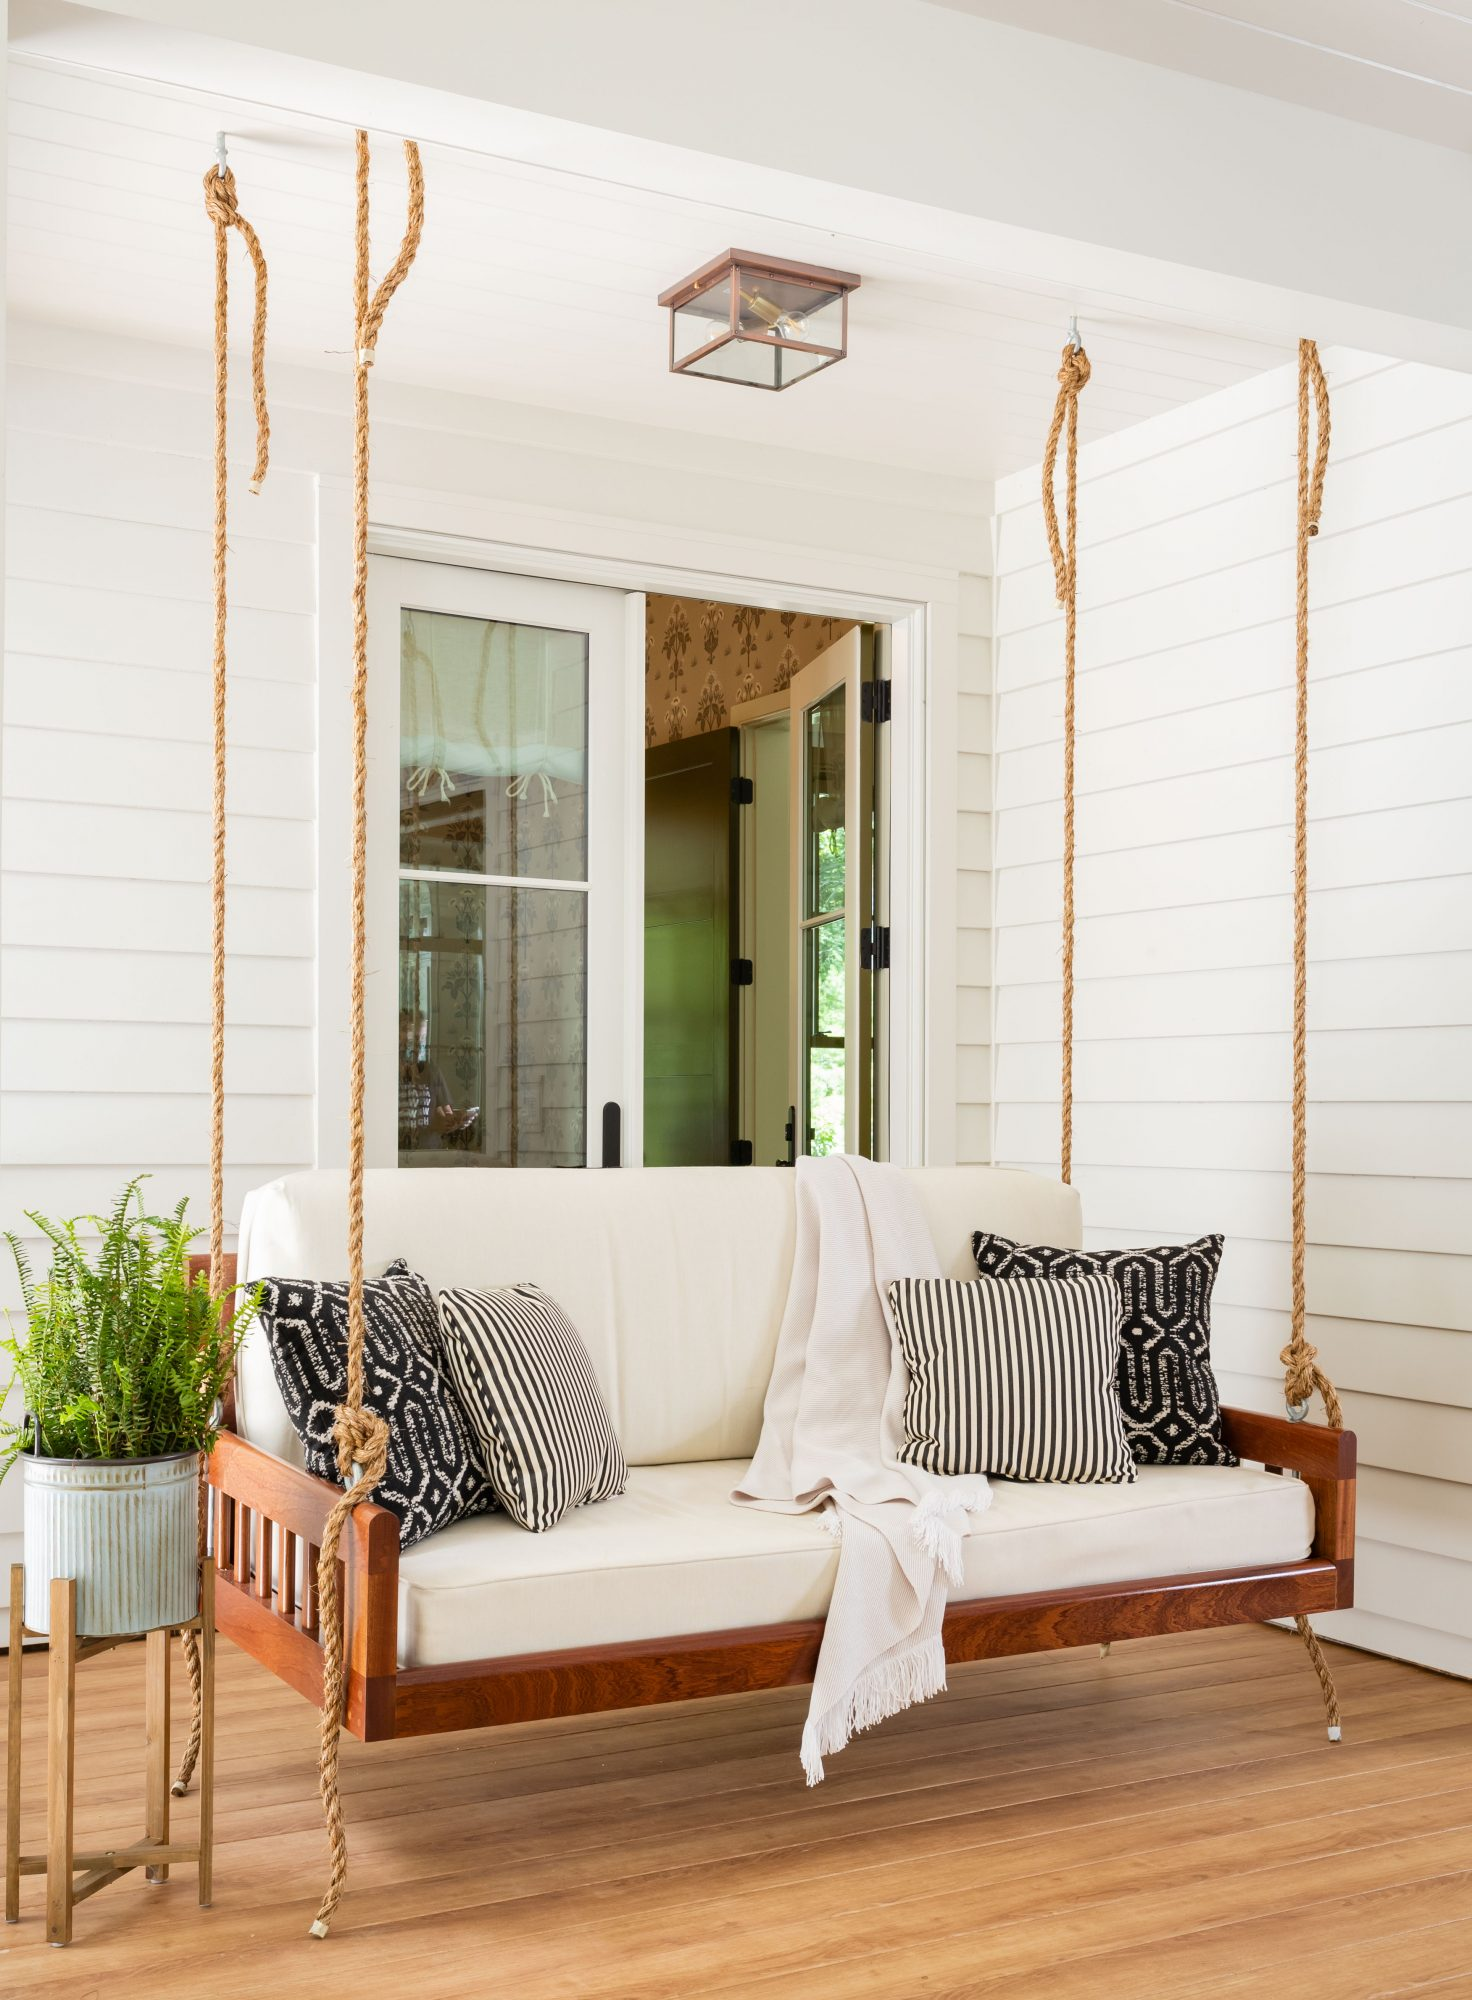 2020 Idea House Screened Porch Swing